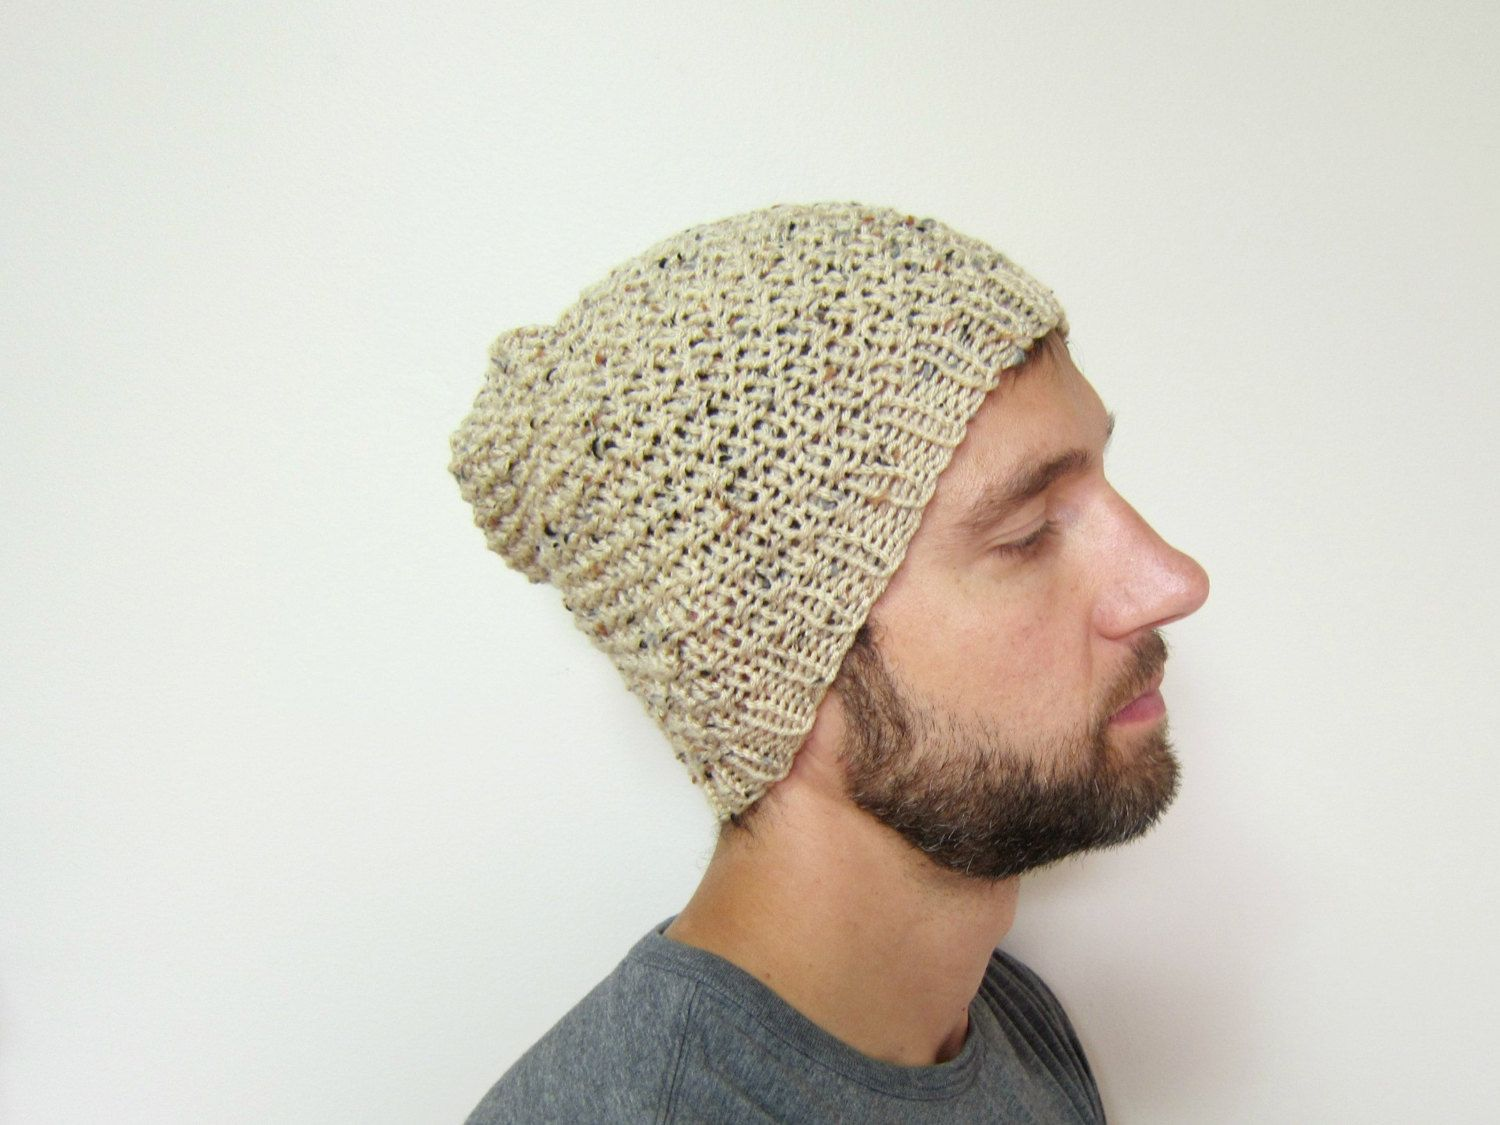 9fe1d21e1eb Mens Slouchy Beanie Knit Guys Hat Knitted Man Hat Handmade Beanies Etsy  Crochet Accessories Ladies Cap Beige Autumn Knits Fashion Winter - pinned  by ...